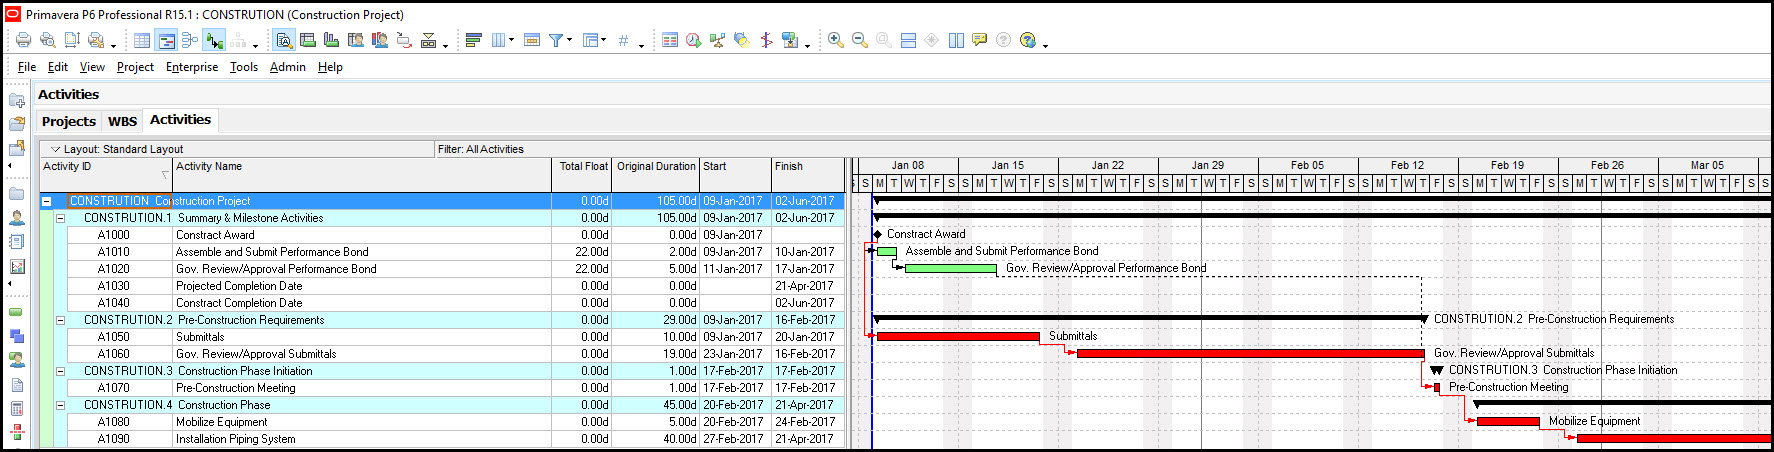 Scheduling Non-Contractual Important Project Task Dates Figure 3